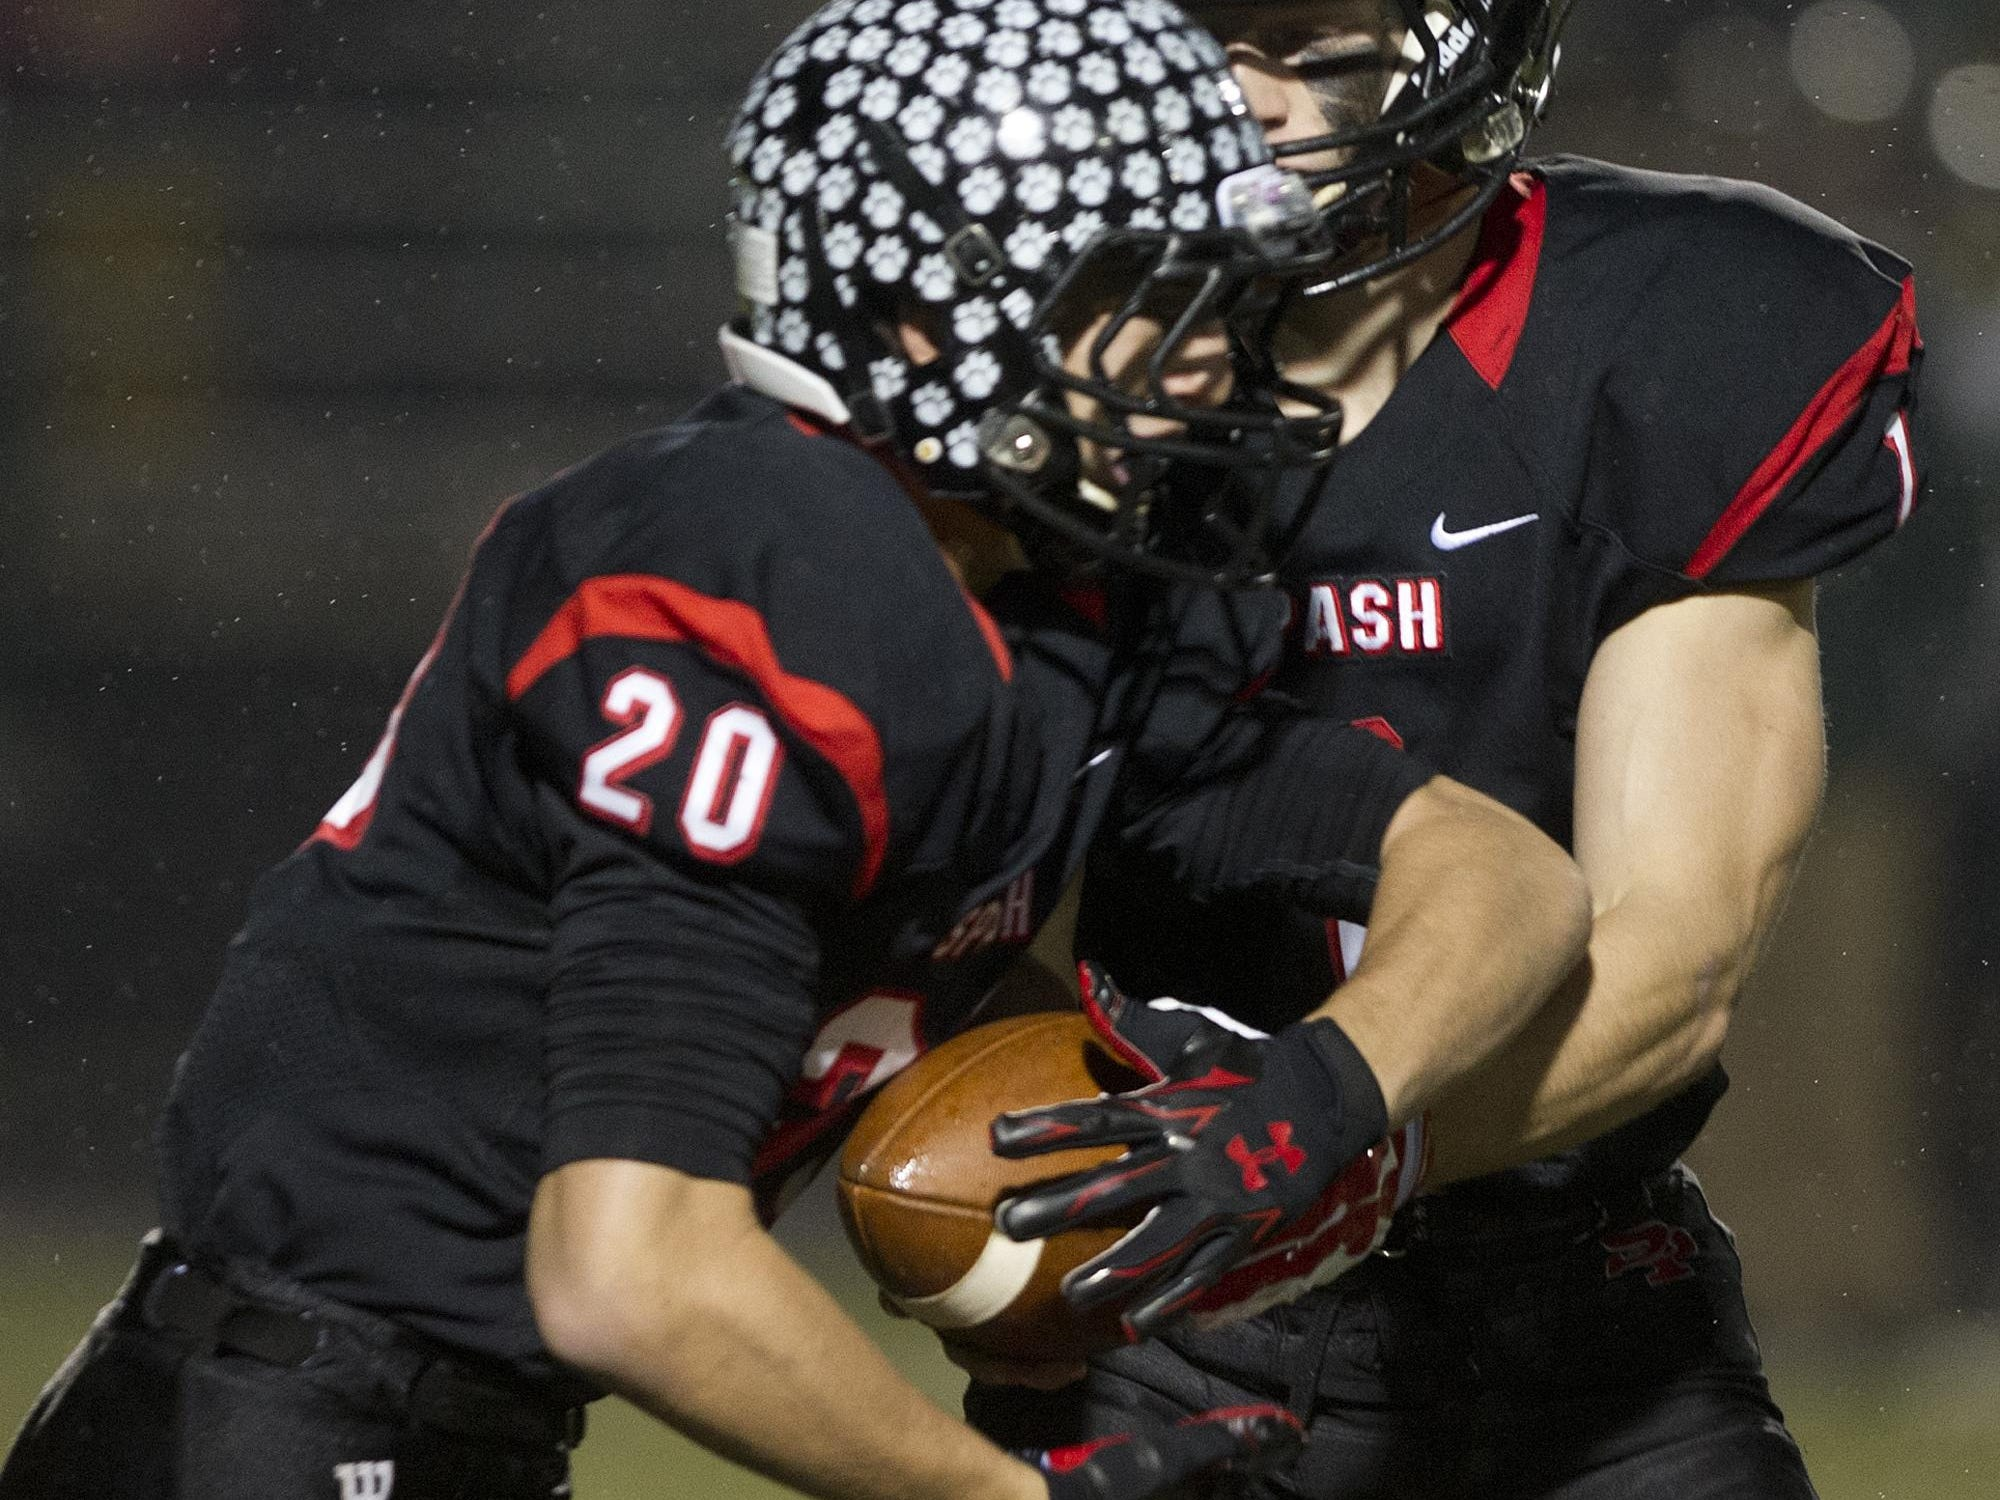 Stevens Point Area Senior High's Victor Kizewski hands off the ball to teammate Gus Turner-Zick during a WIAA Division 1 playoff game Friday against D.C. Everest at Goerke Field in Stevens Point.